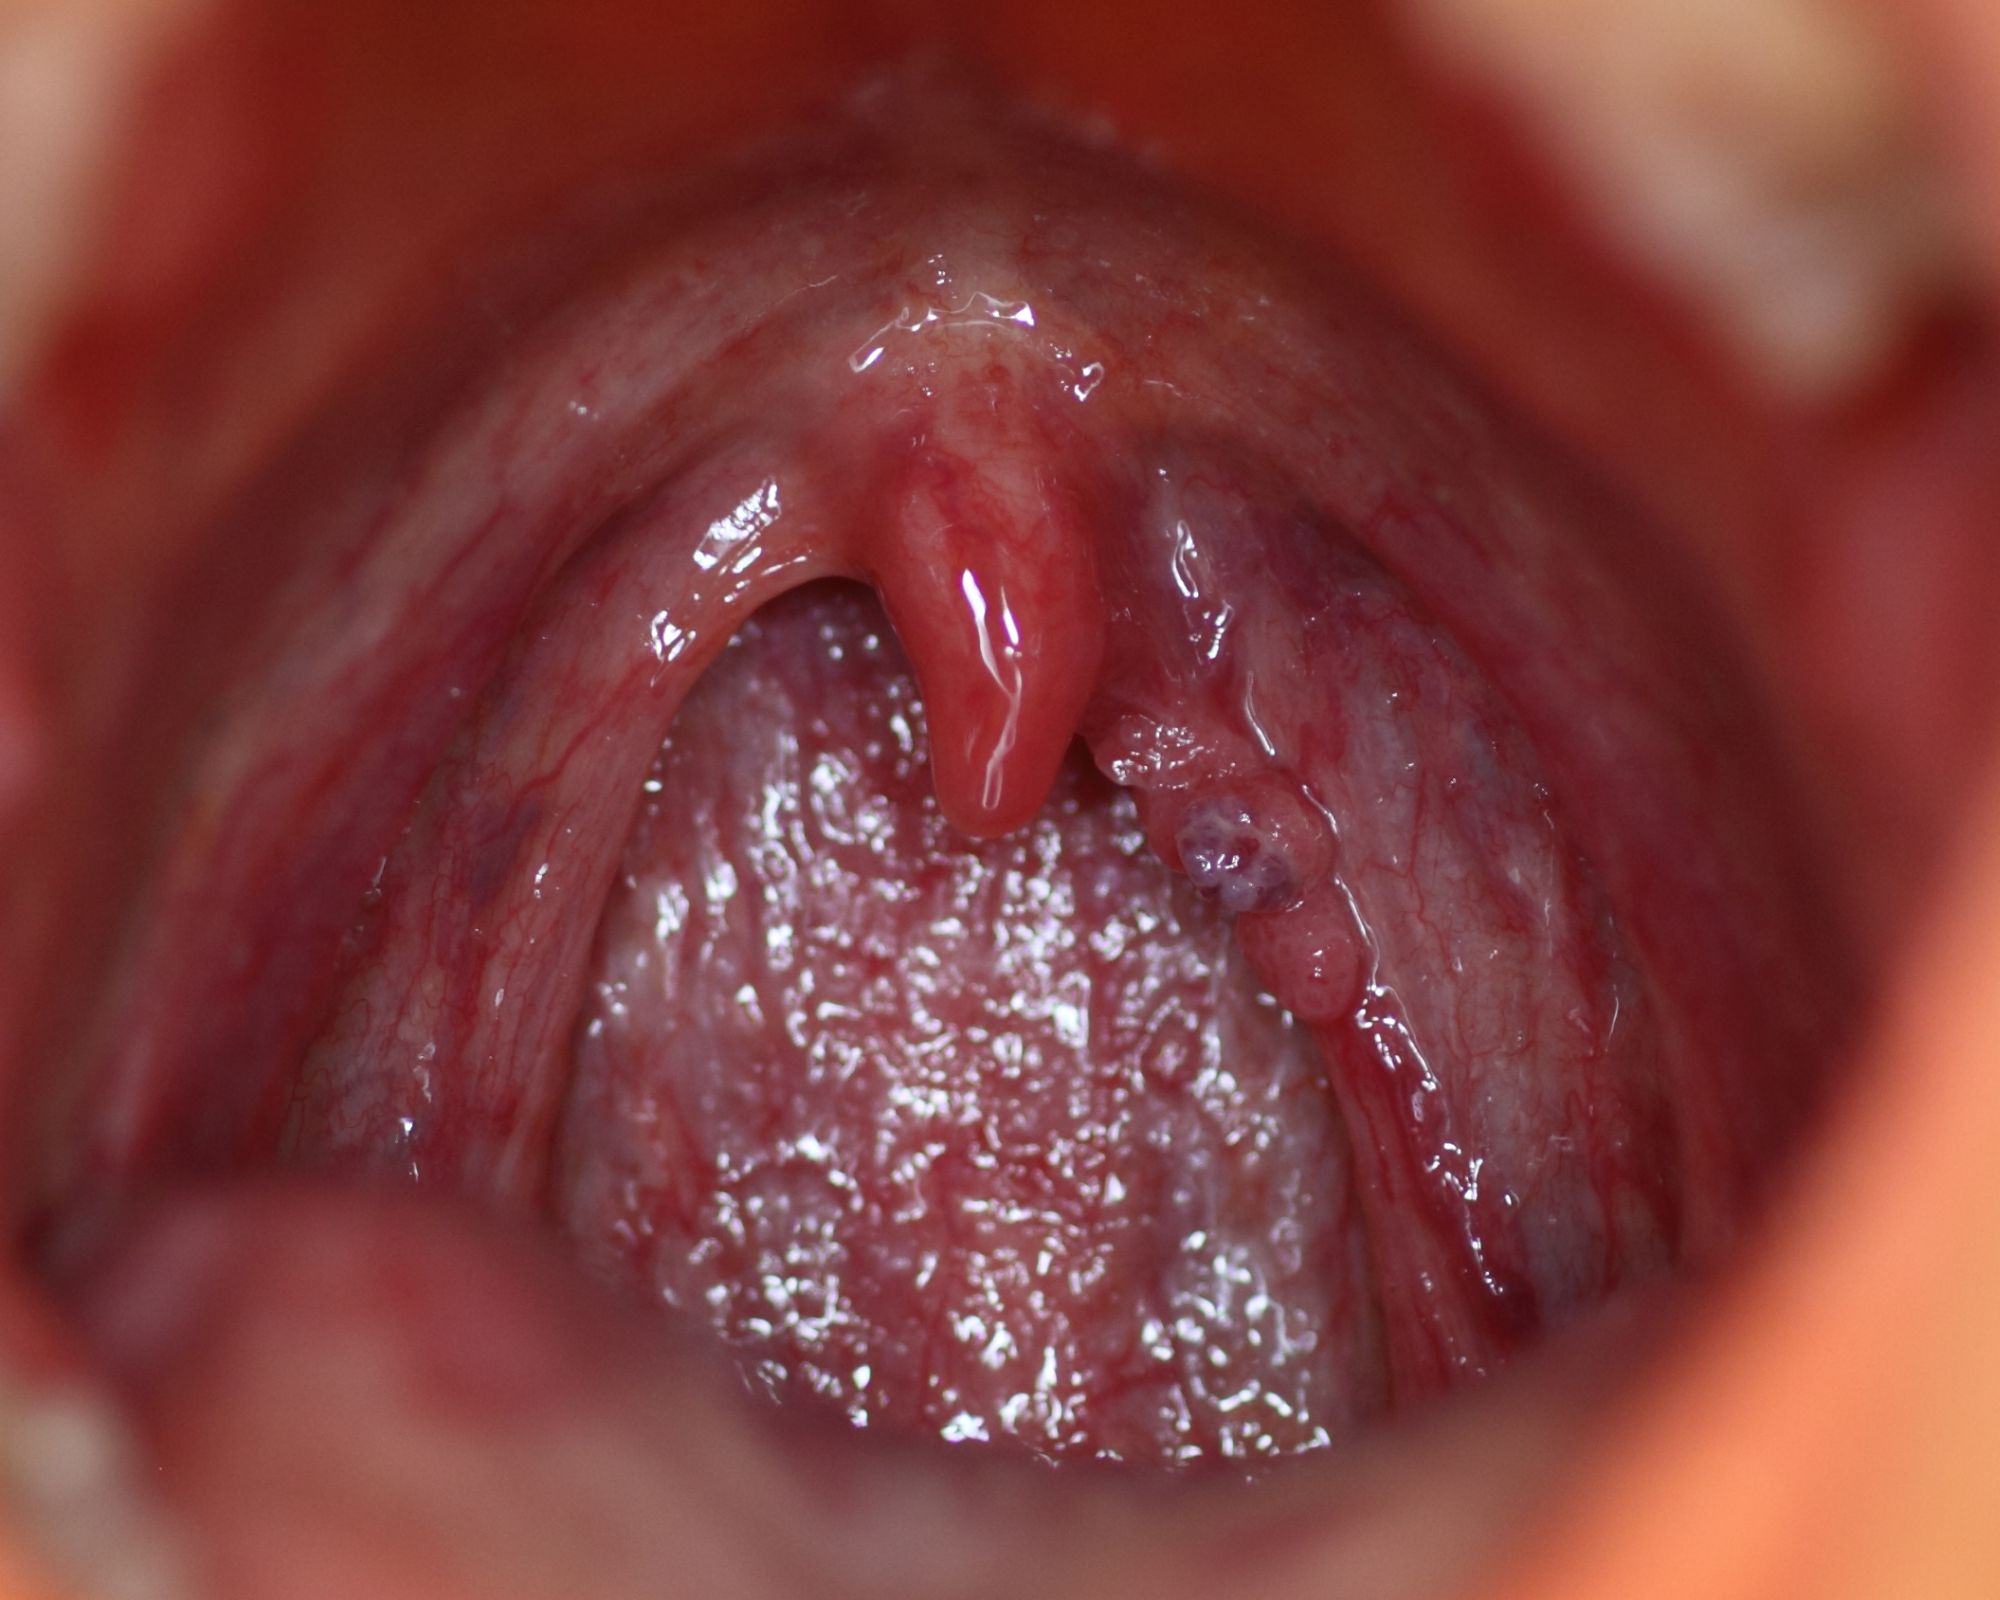 Hpv papilloma in throat. Hpv in throat treatment - triplus.ro